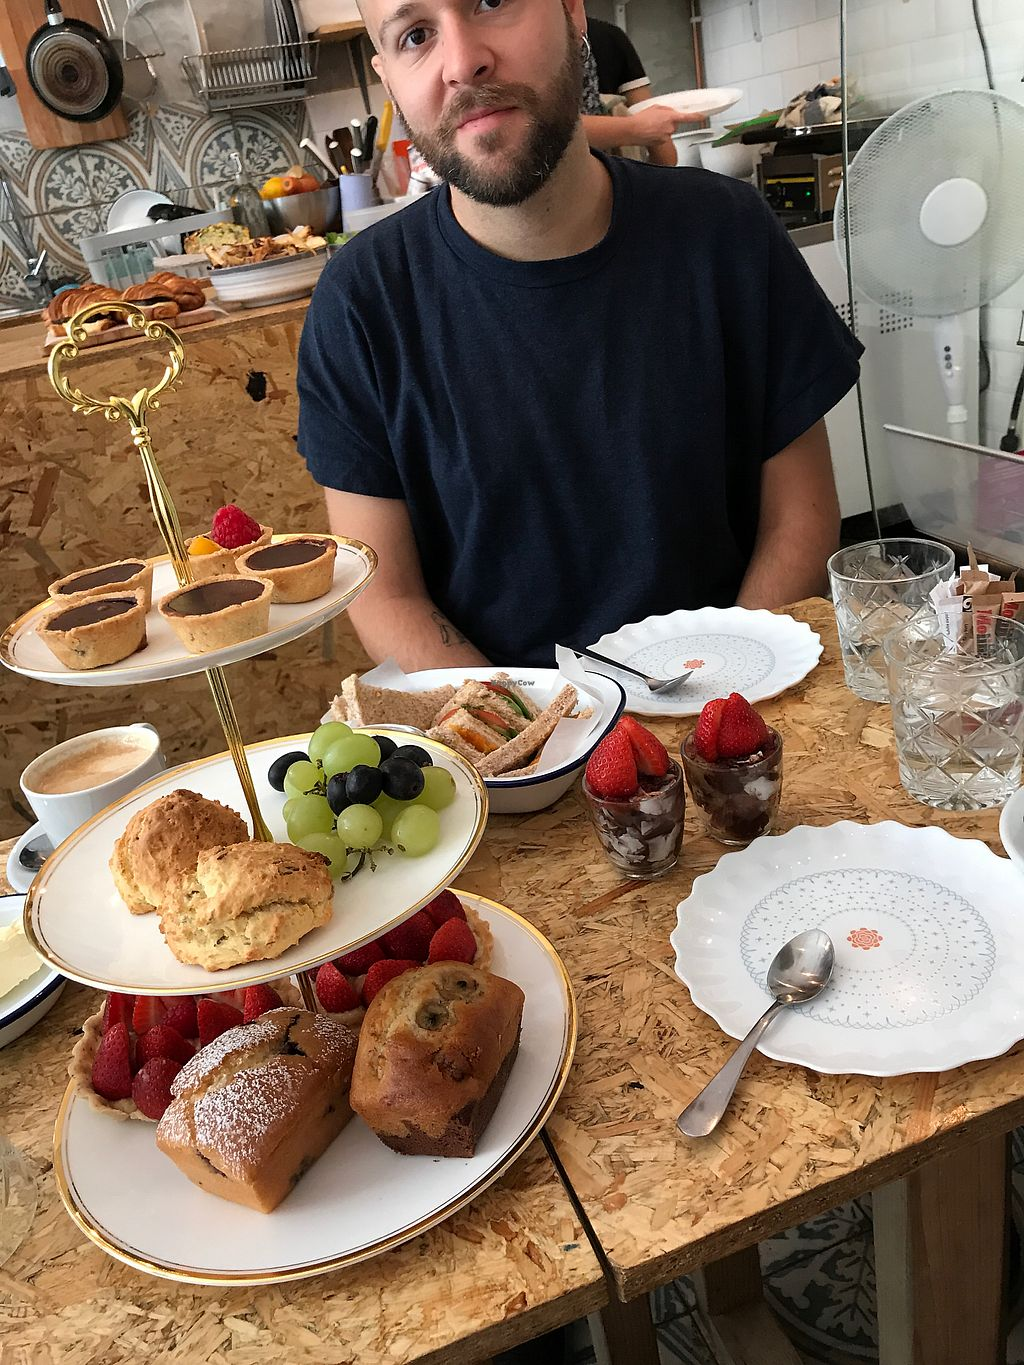 """Photo of Lele's  by <a href=""""/members/profile/JamesPegg"""">JamesPegg</a> <br/>Sunday Vegan Afternoon Tea <br/> September 5, 2017  - <a href='/contact/abuse/image/85652/301066'>Report</a>"""